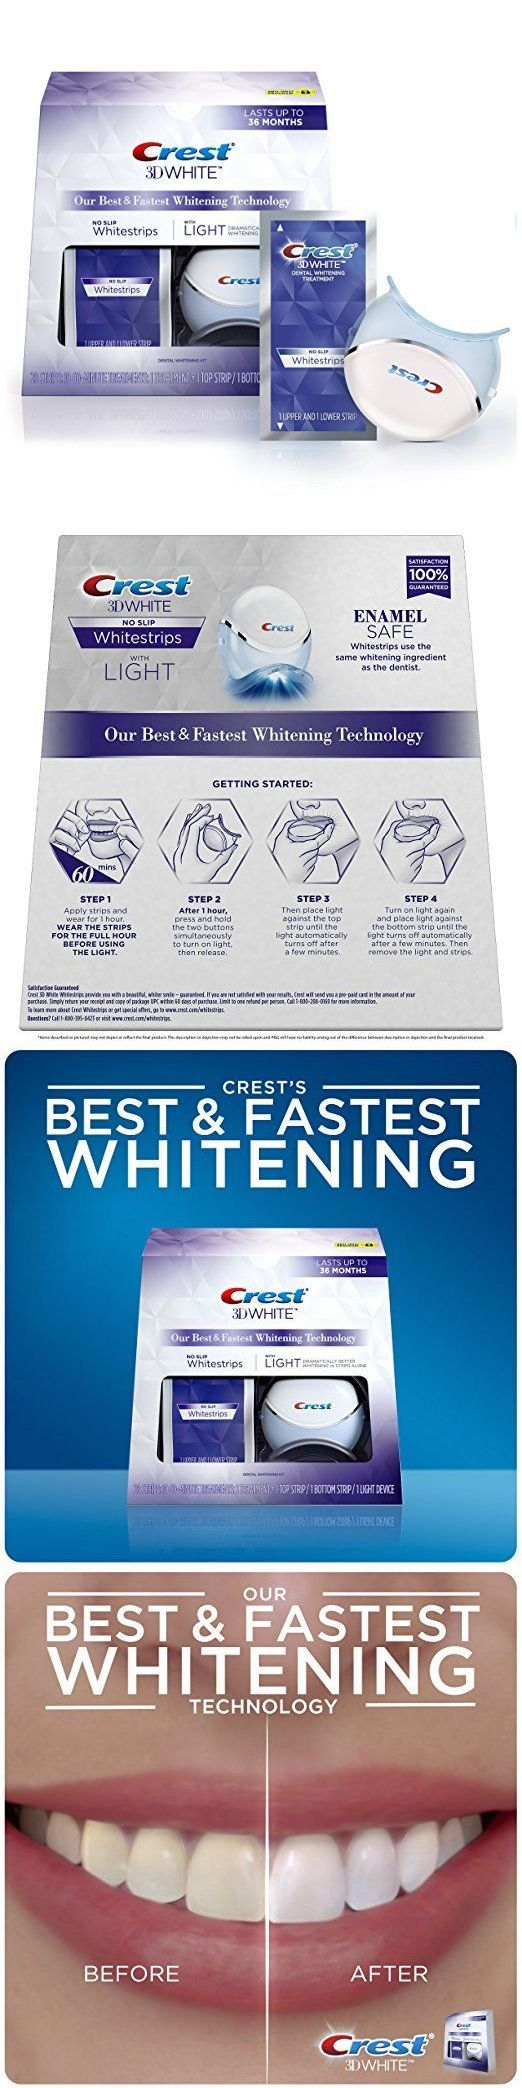 Whitening: Crest 3D White Whitestrips With Light, 10 Ct. Teeth Whitening Kit BUY IT NOW ONLY: $84.99 http://reviewscircle.com/Teeth-Whitening-4-You?i=kit